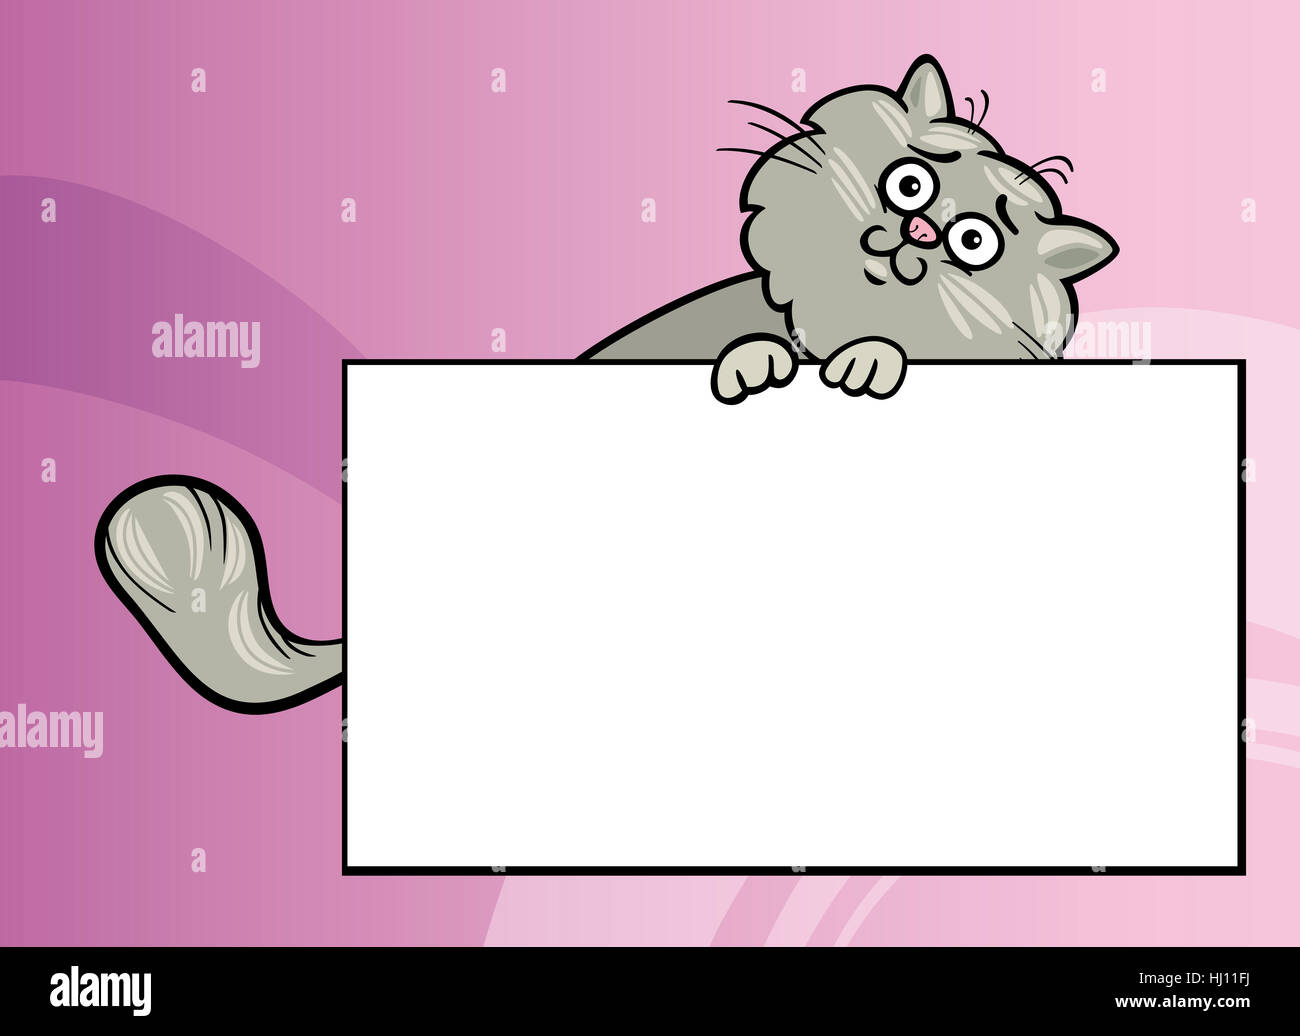 Cartoon Illustration of Funny Fluffy Cat with White Card or Board Greeting or Business Card Design - Stock Image